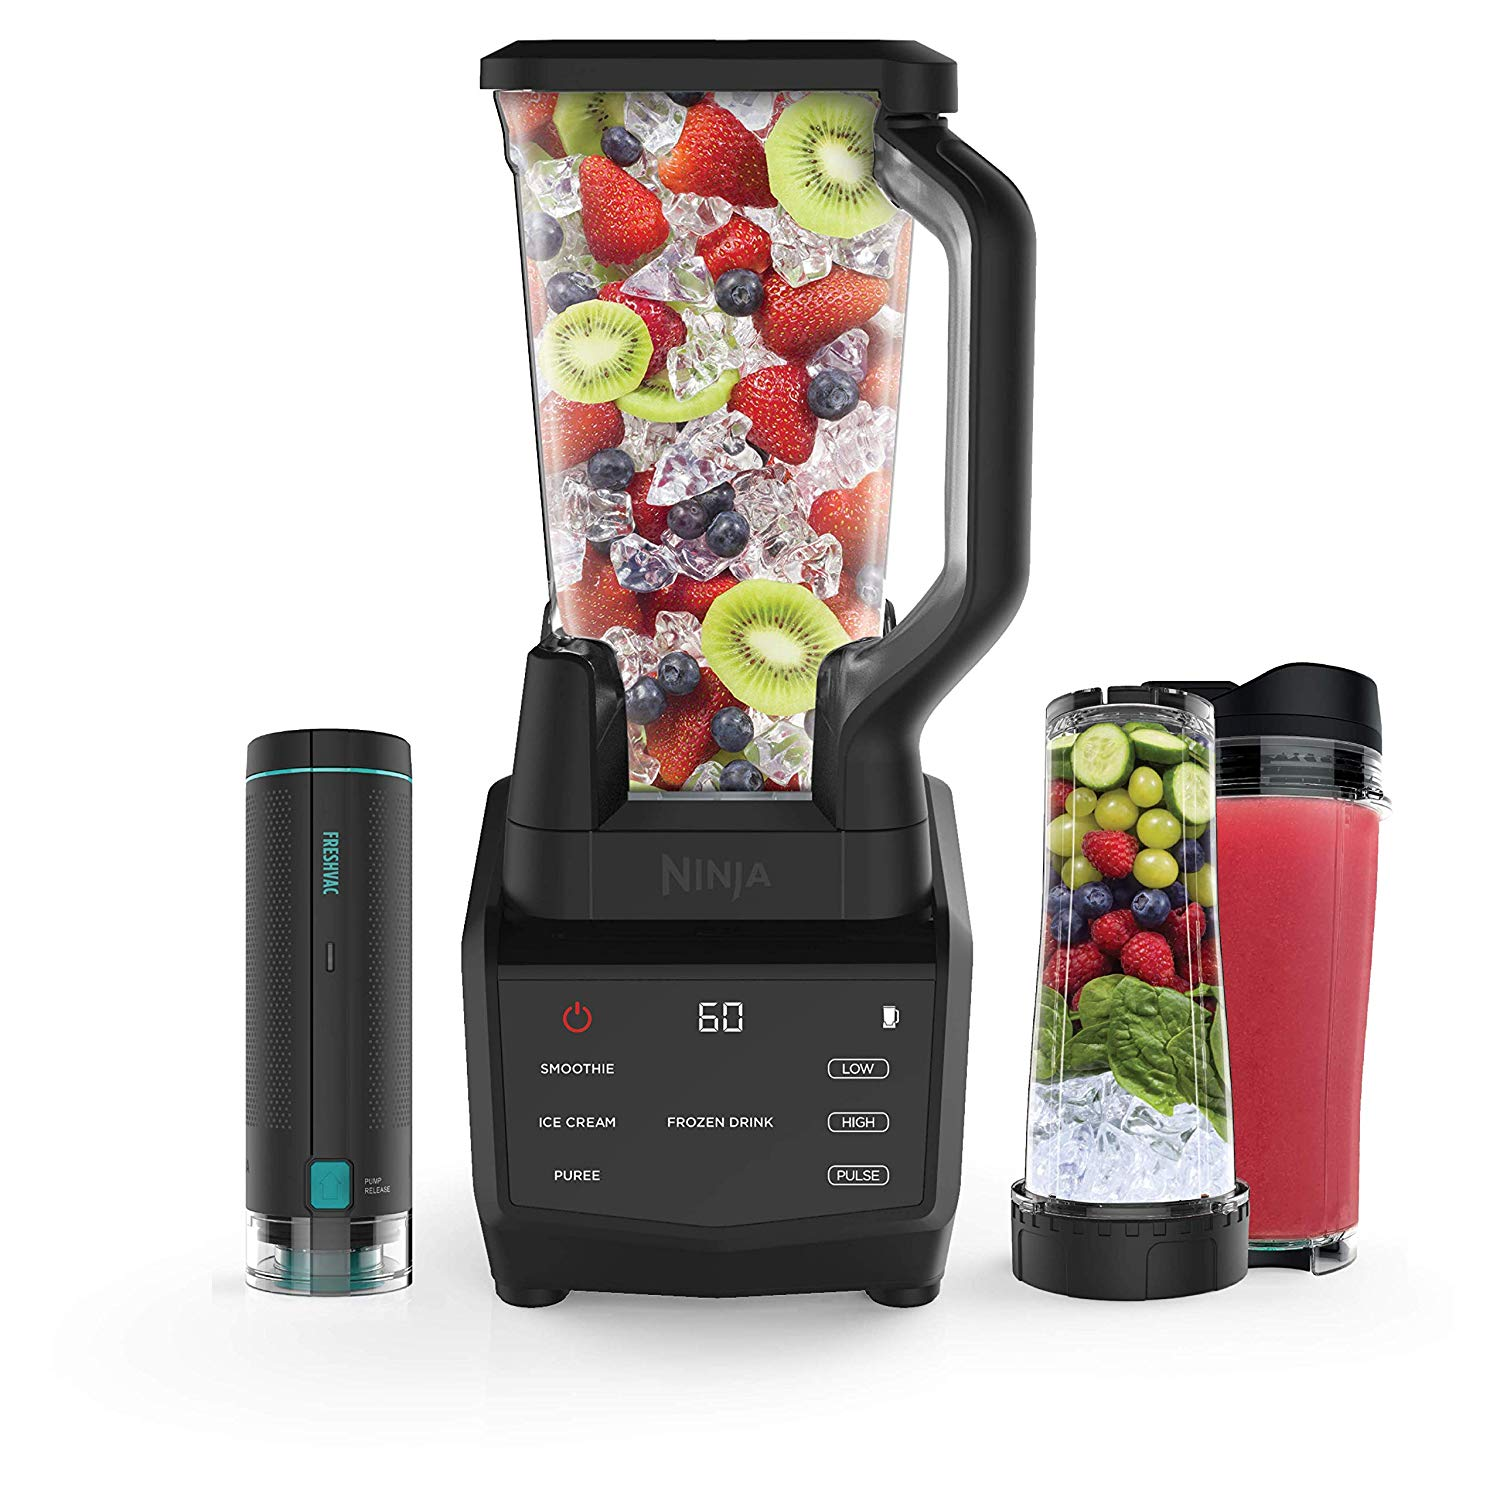 The Ninja Smart Screen Blender DUO